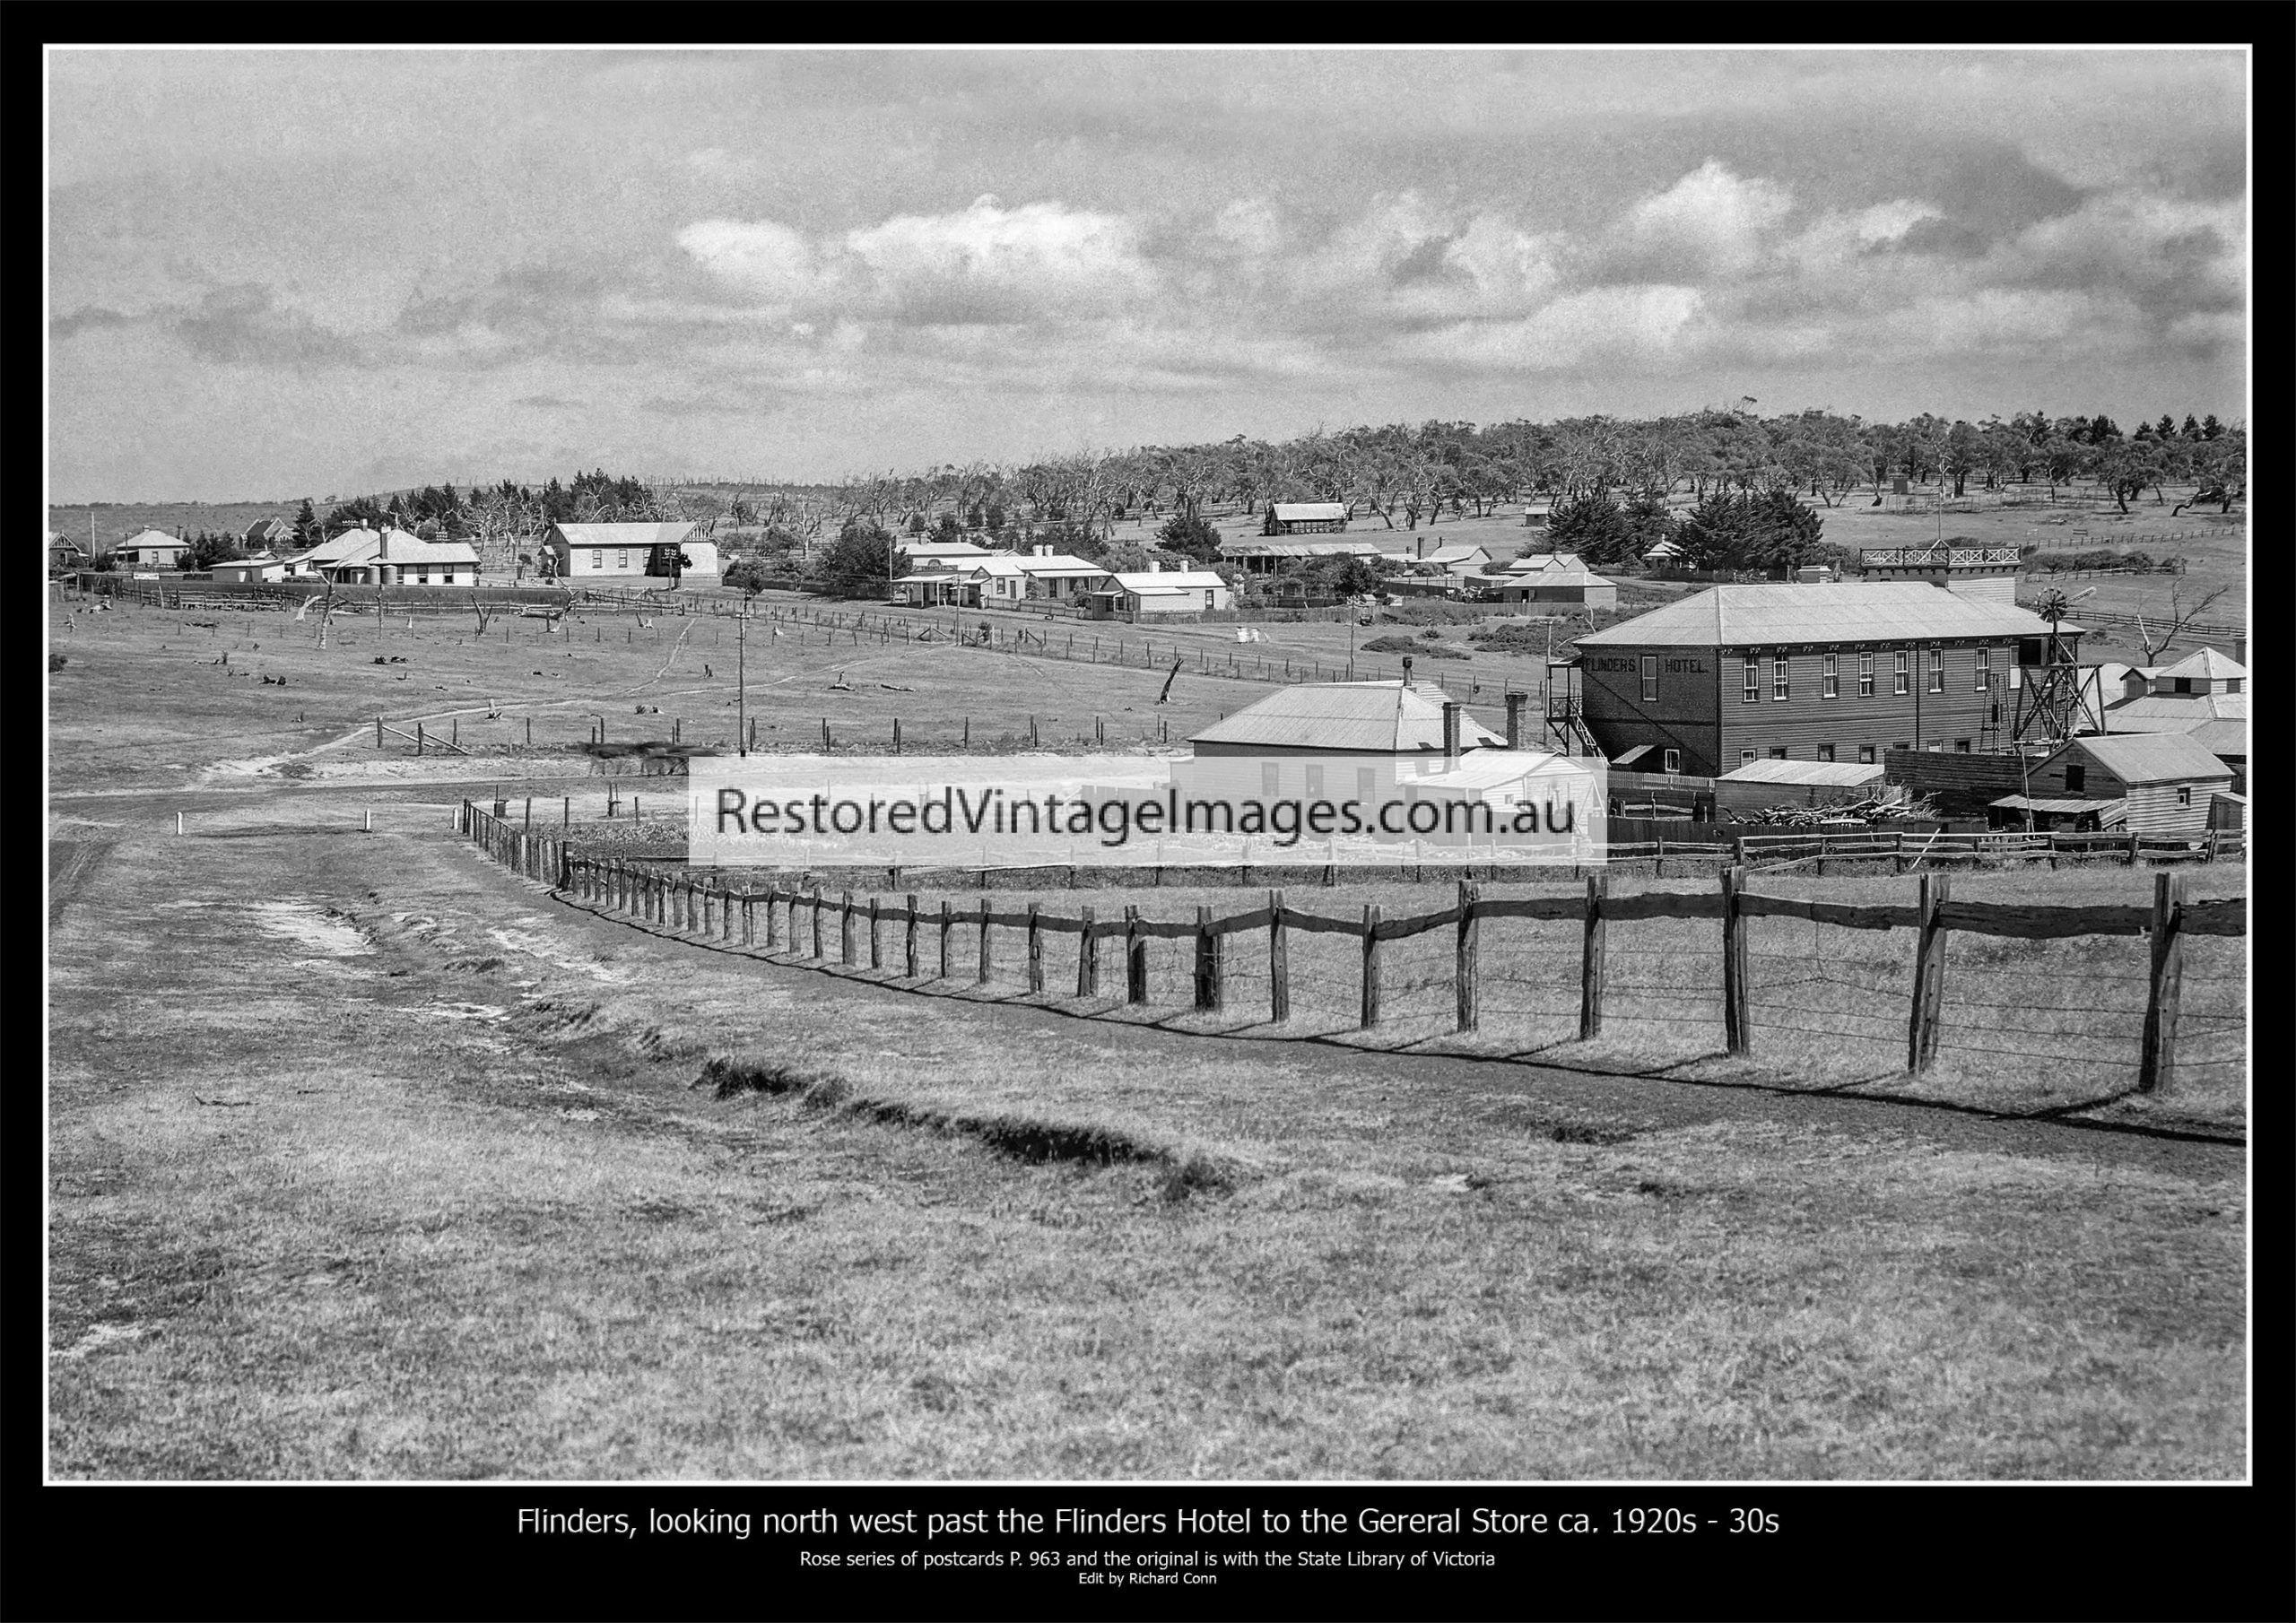 Flinders Victoria – Panorama Looking North West Past The Hotel To The General Store Ca. 1920s To 30s